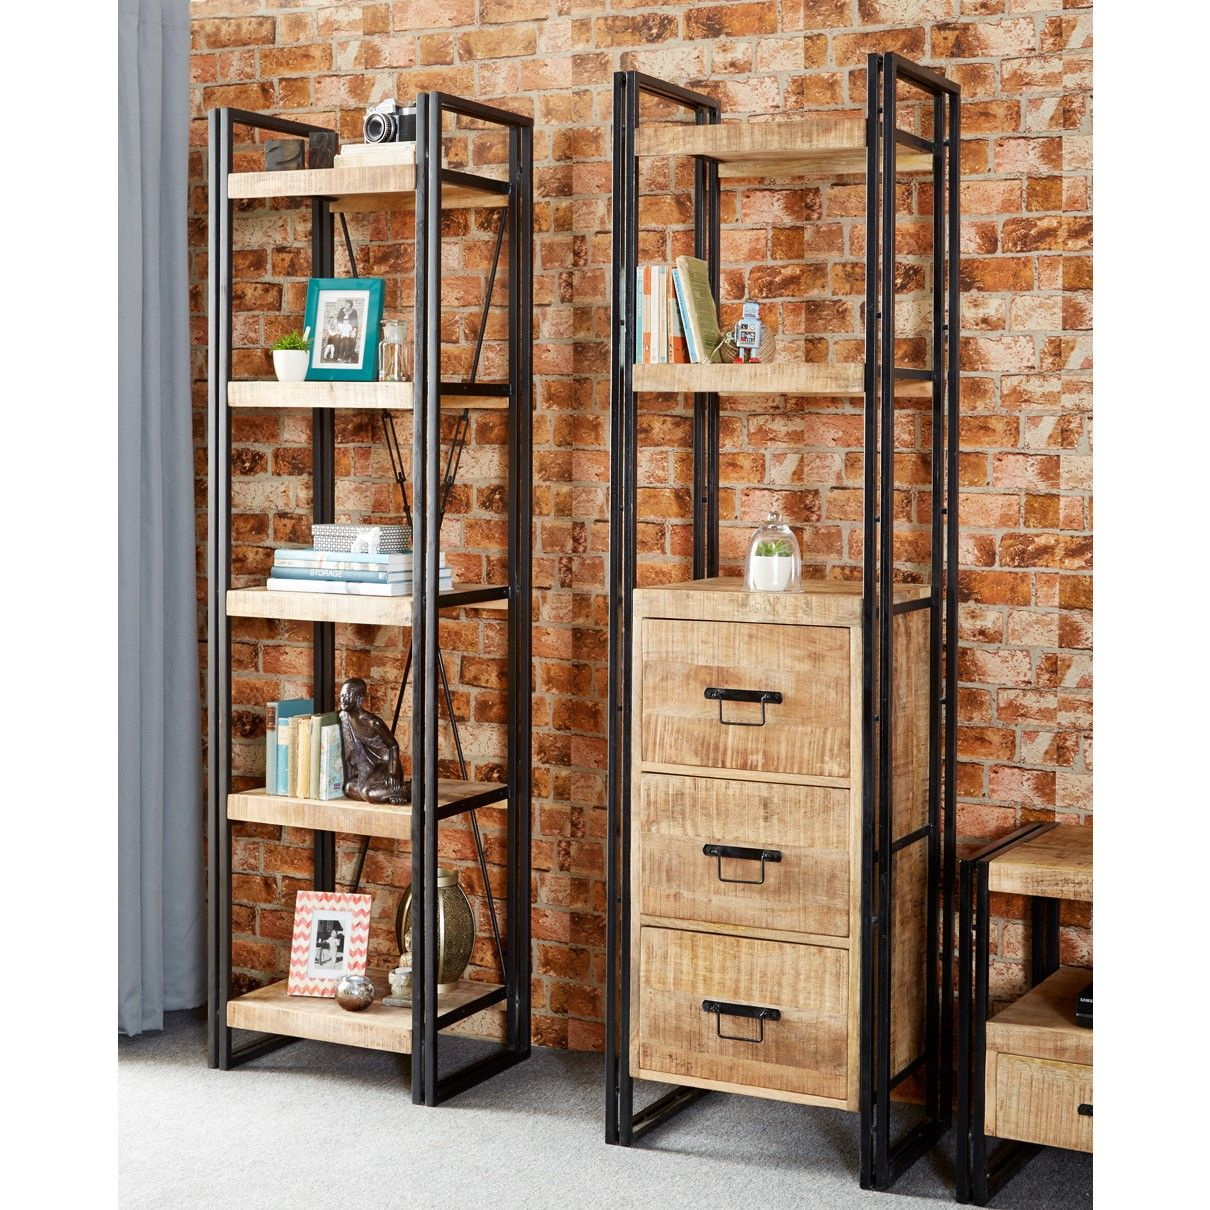 Upcycled Industrial Mintis Narrow Bookcase with 3 Drawers - Reclaimed Wood Mental Frame Bookcase Bookshelf Organizing